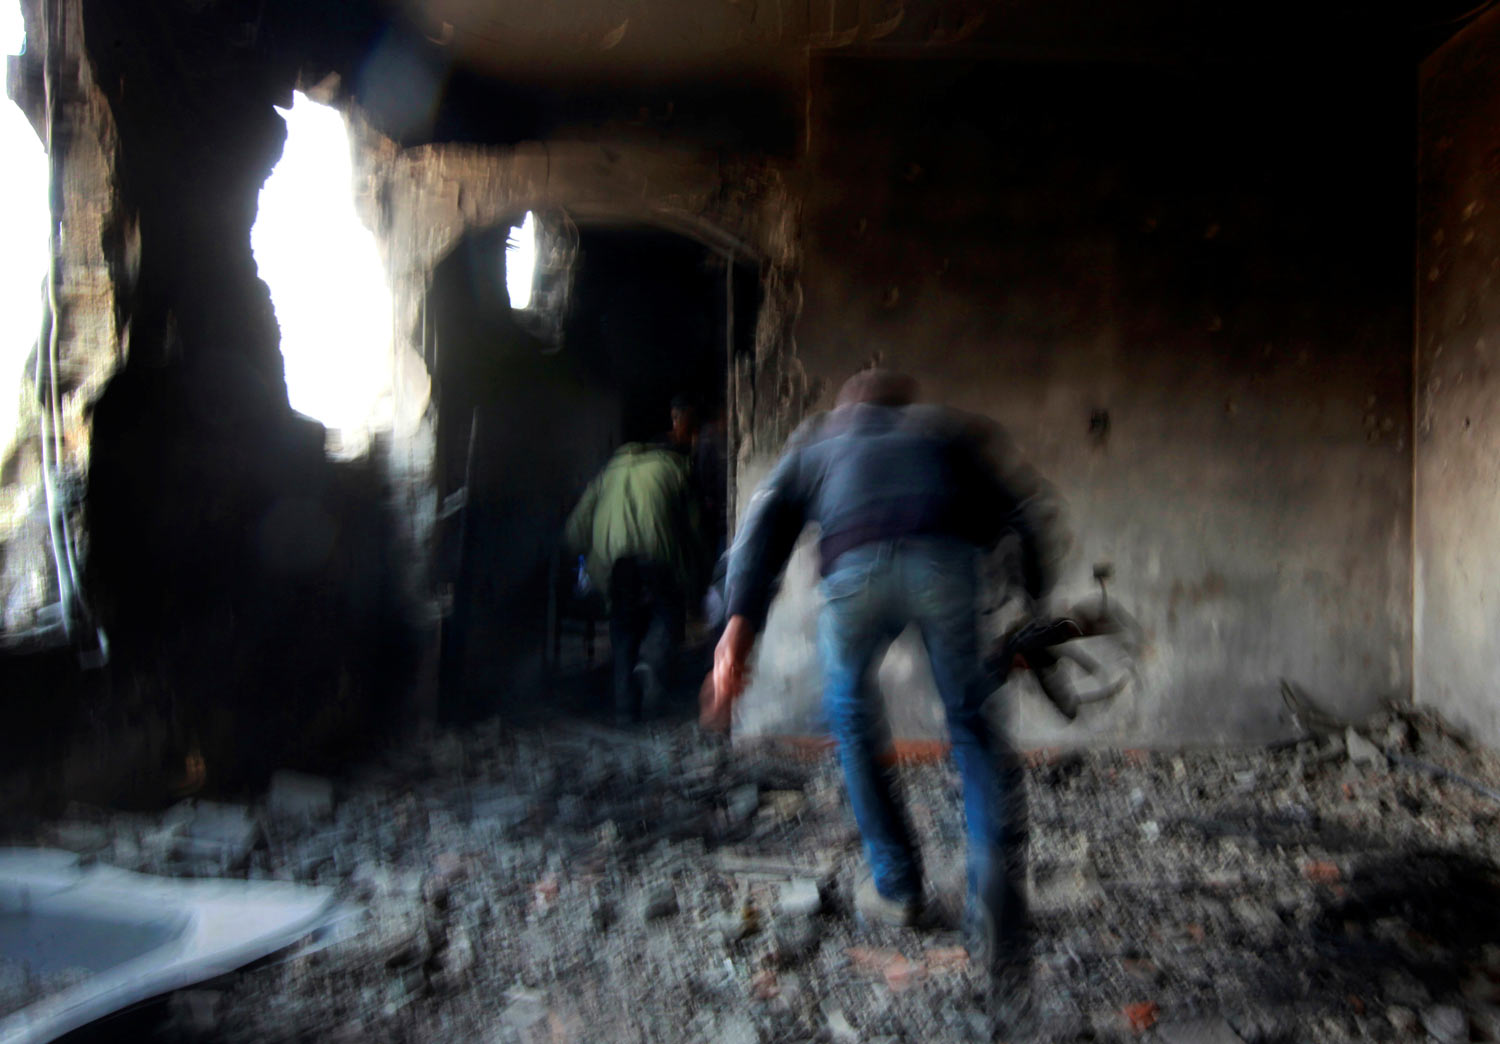 Rebel fighters run for cover inside a building on the frontline in Tripoli street in central Misrata, April 21, 2011. Tripoli street is the scene of some of the heaviest fighting between rebels and Gaddafi forces. (REUTERS/Yannis Behrakis)